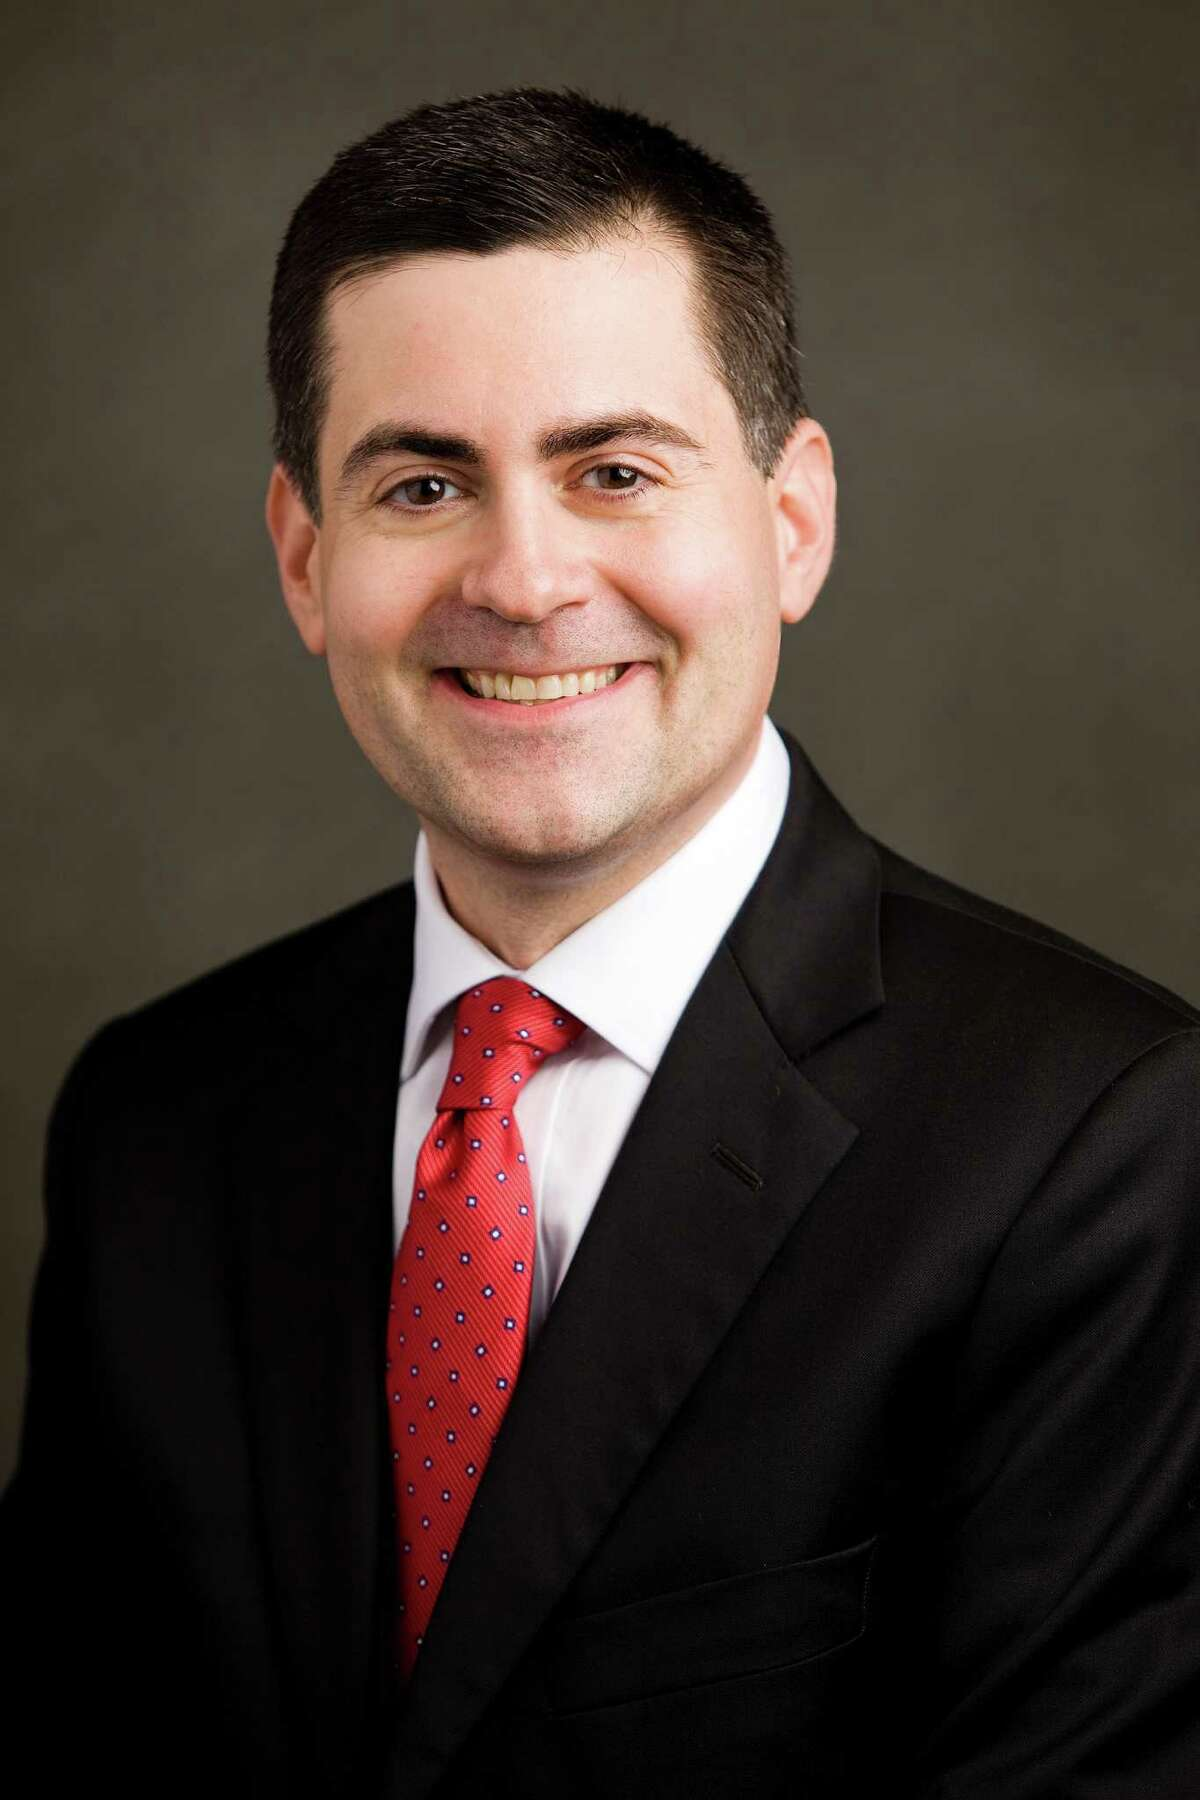 Russell Moore is dean of the School of Theology at Southern Baptist Theological Seminary.